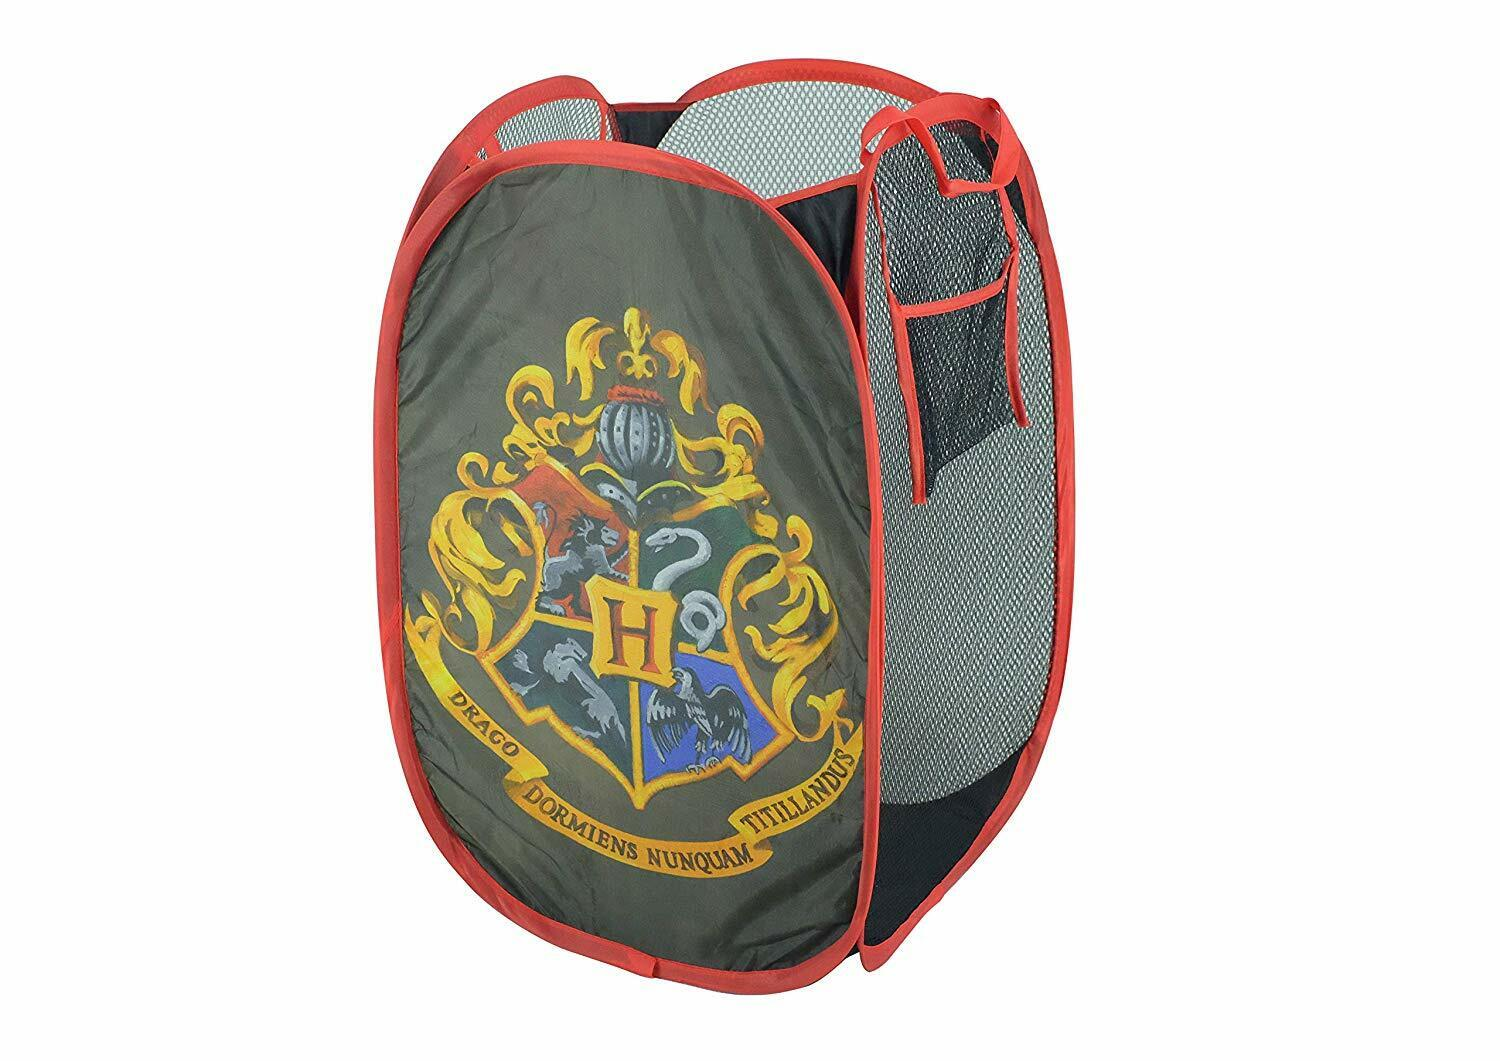 Harry Potter Pop Up Hampers Toys Book Cloth Storage Organize